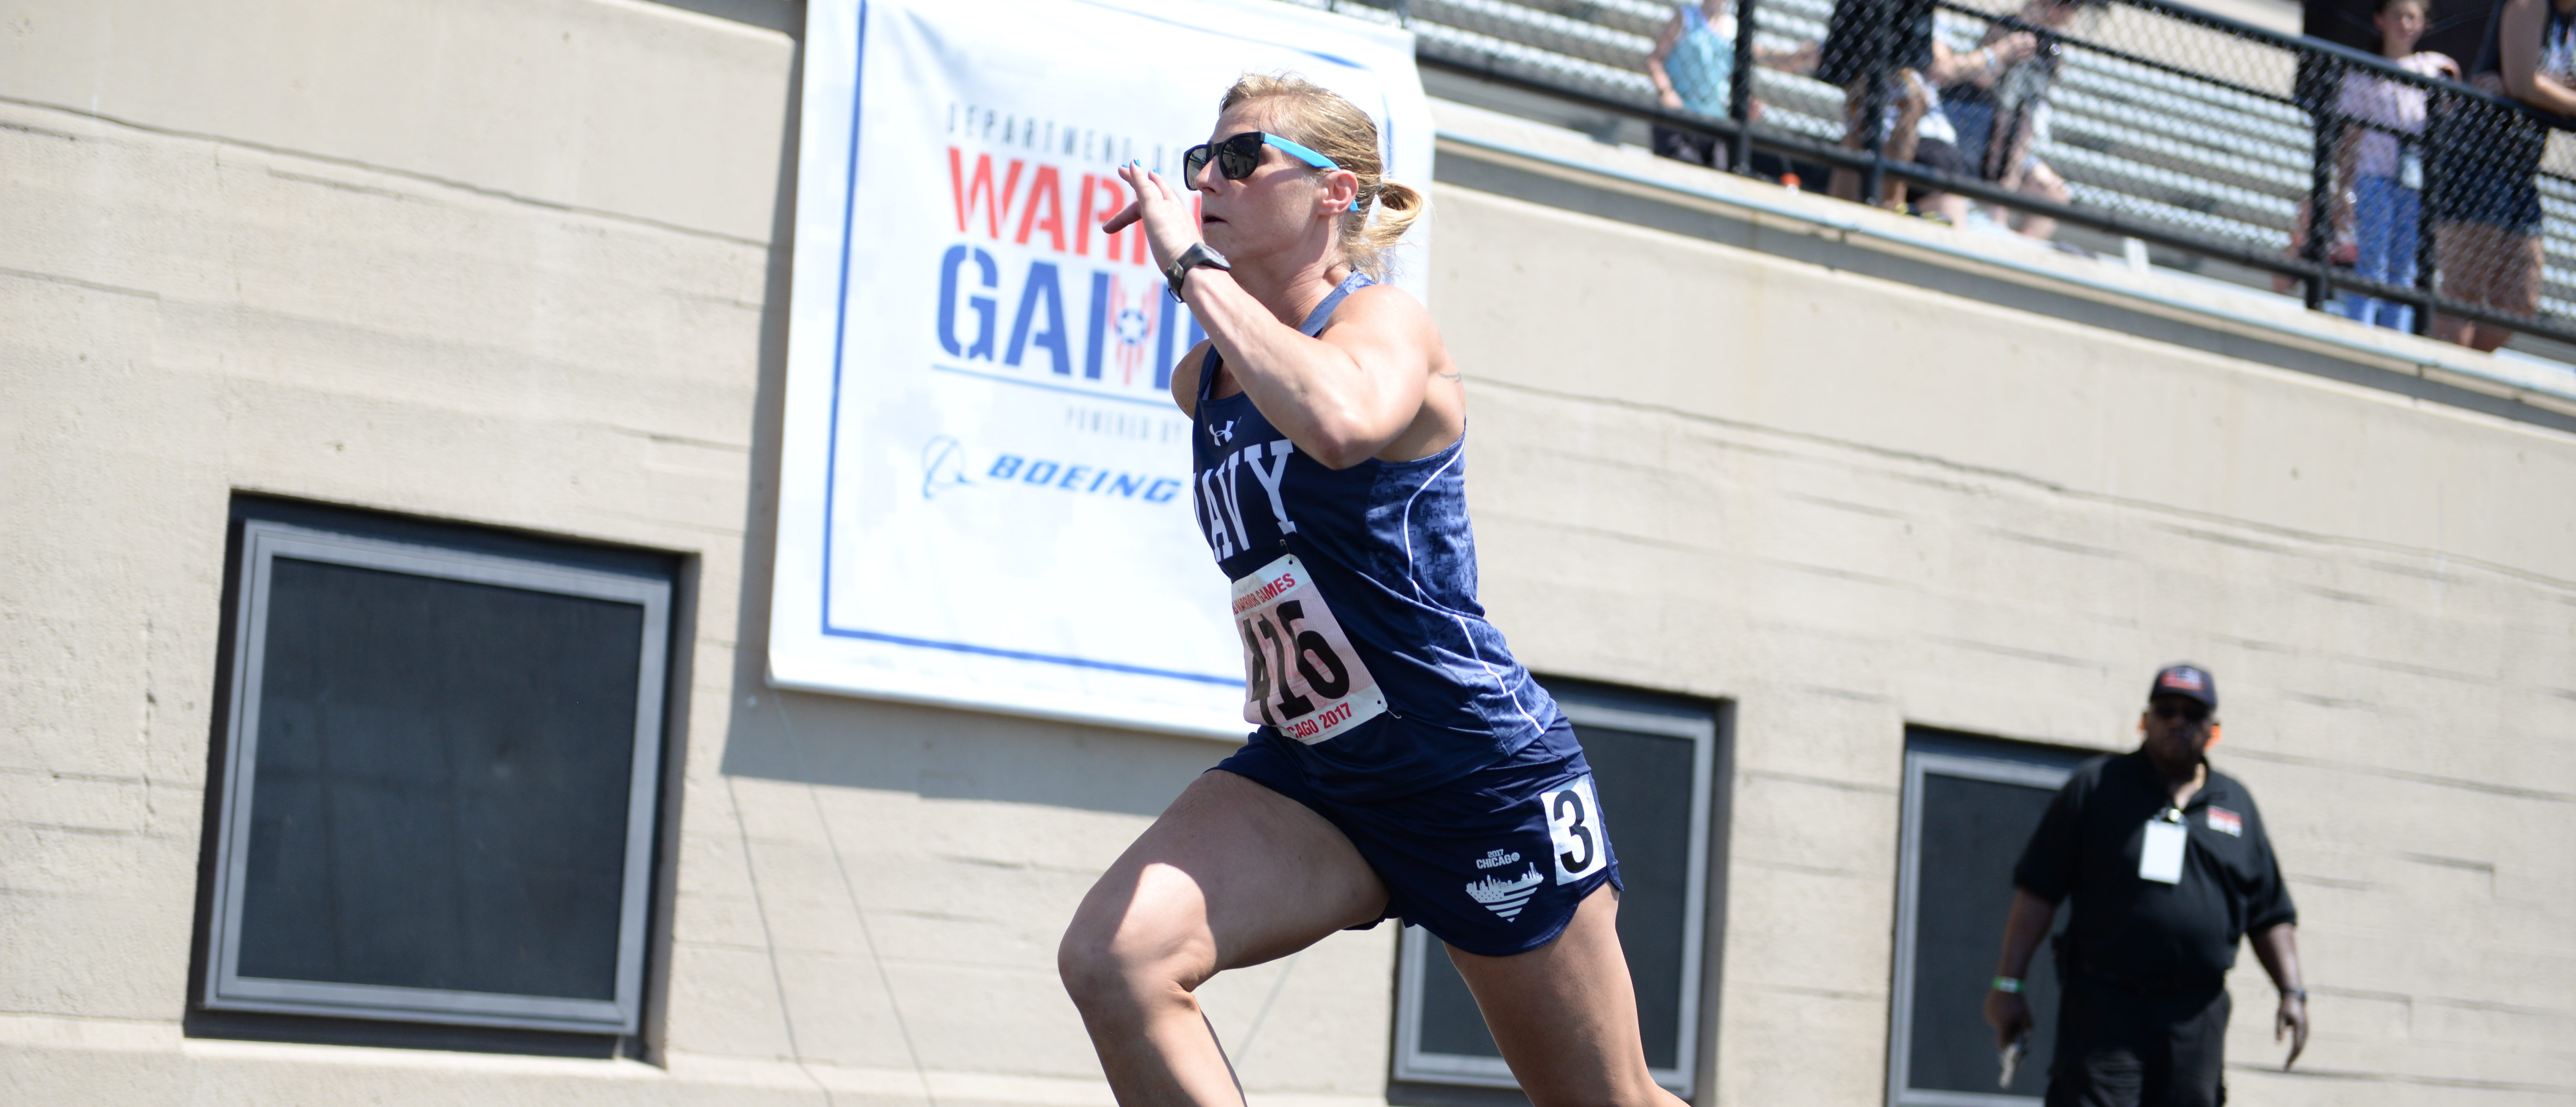 CHICAGO (July 2, 2017) Petty Officer 2nd Class Melissa Klotz, of Team Navy, runs the women's 100-meter dash during the 2017 Department of Defense Warrior Games. The DoD Warrior Games are an annual event allowing wounded, ill and injured service members and veterans to compete in Paralympic-style sports including archery, cycling, field, shooting, sitting volleyball, swimming, track and wheelchair basketball. (DoD photo by Mass Communication Specialist 1st Class Patrick Gordon)